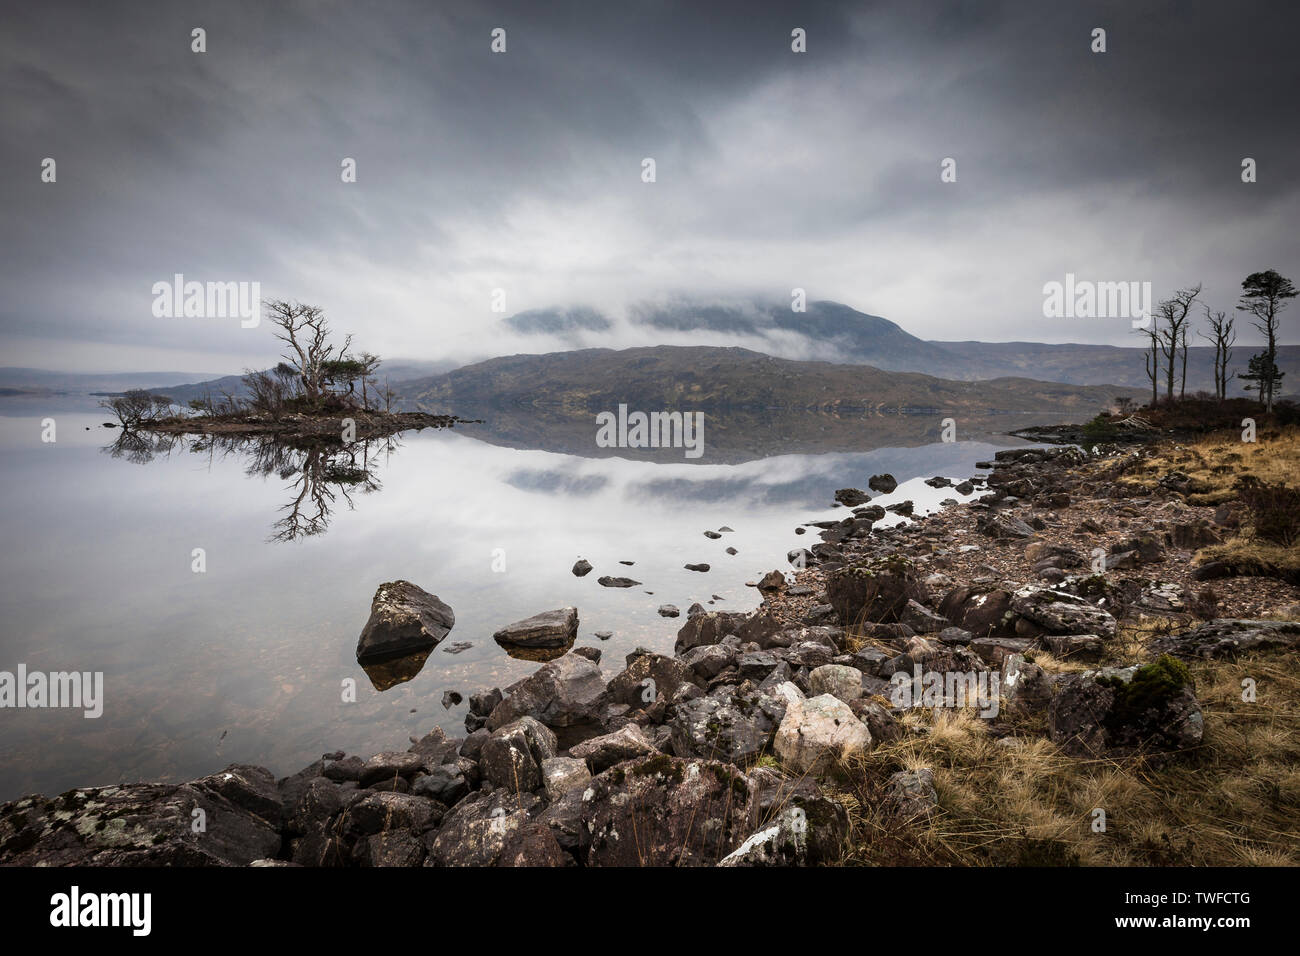 Loch Assynt in the Highlands of Scotland. - Stock Image